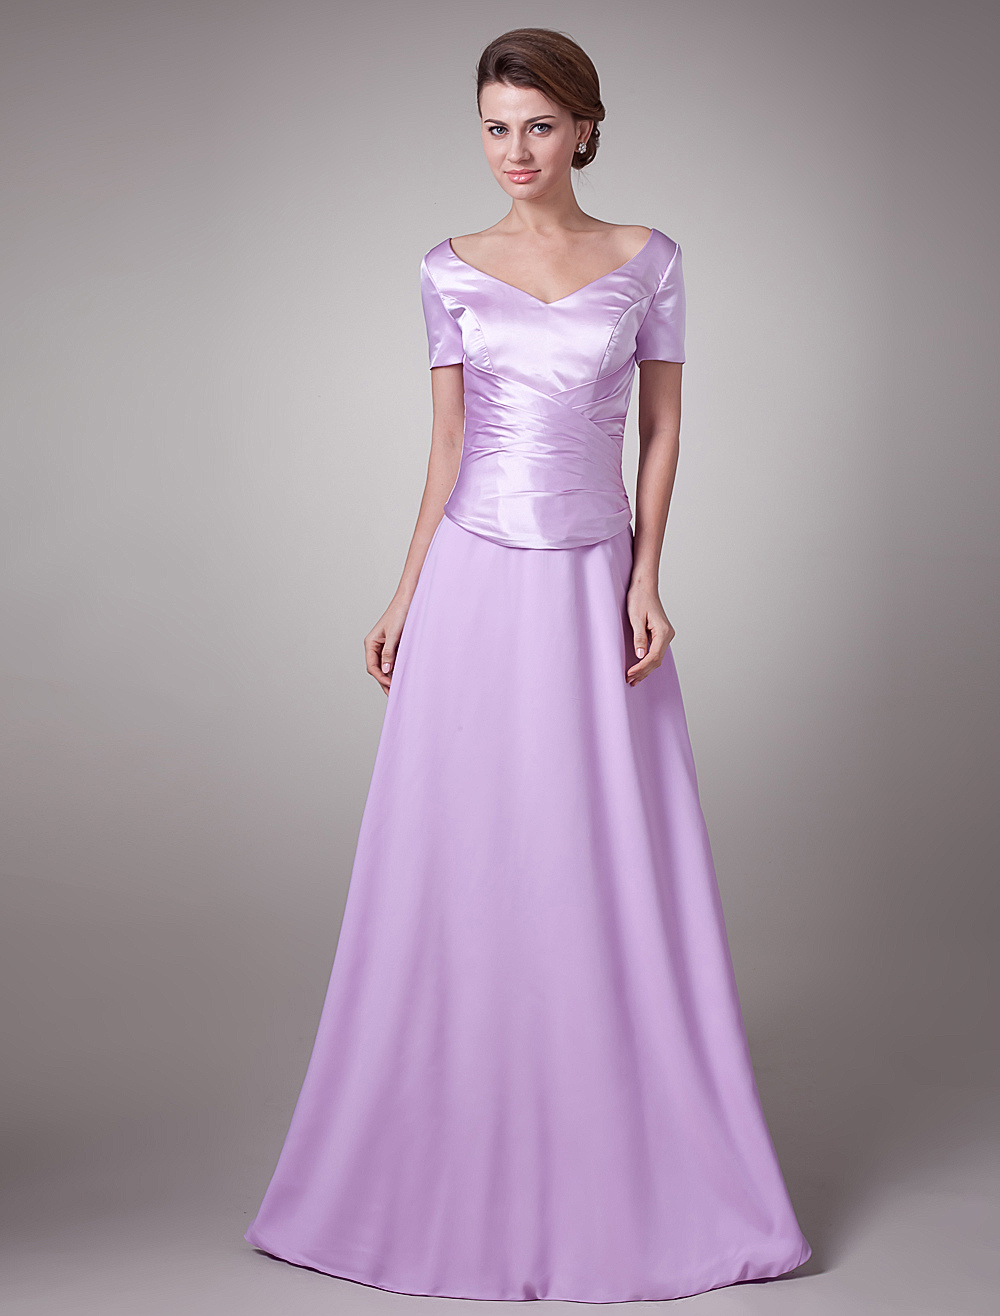 Short Sleeves V-Neck Draped Waist Long Mother of the Bride Dress